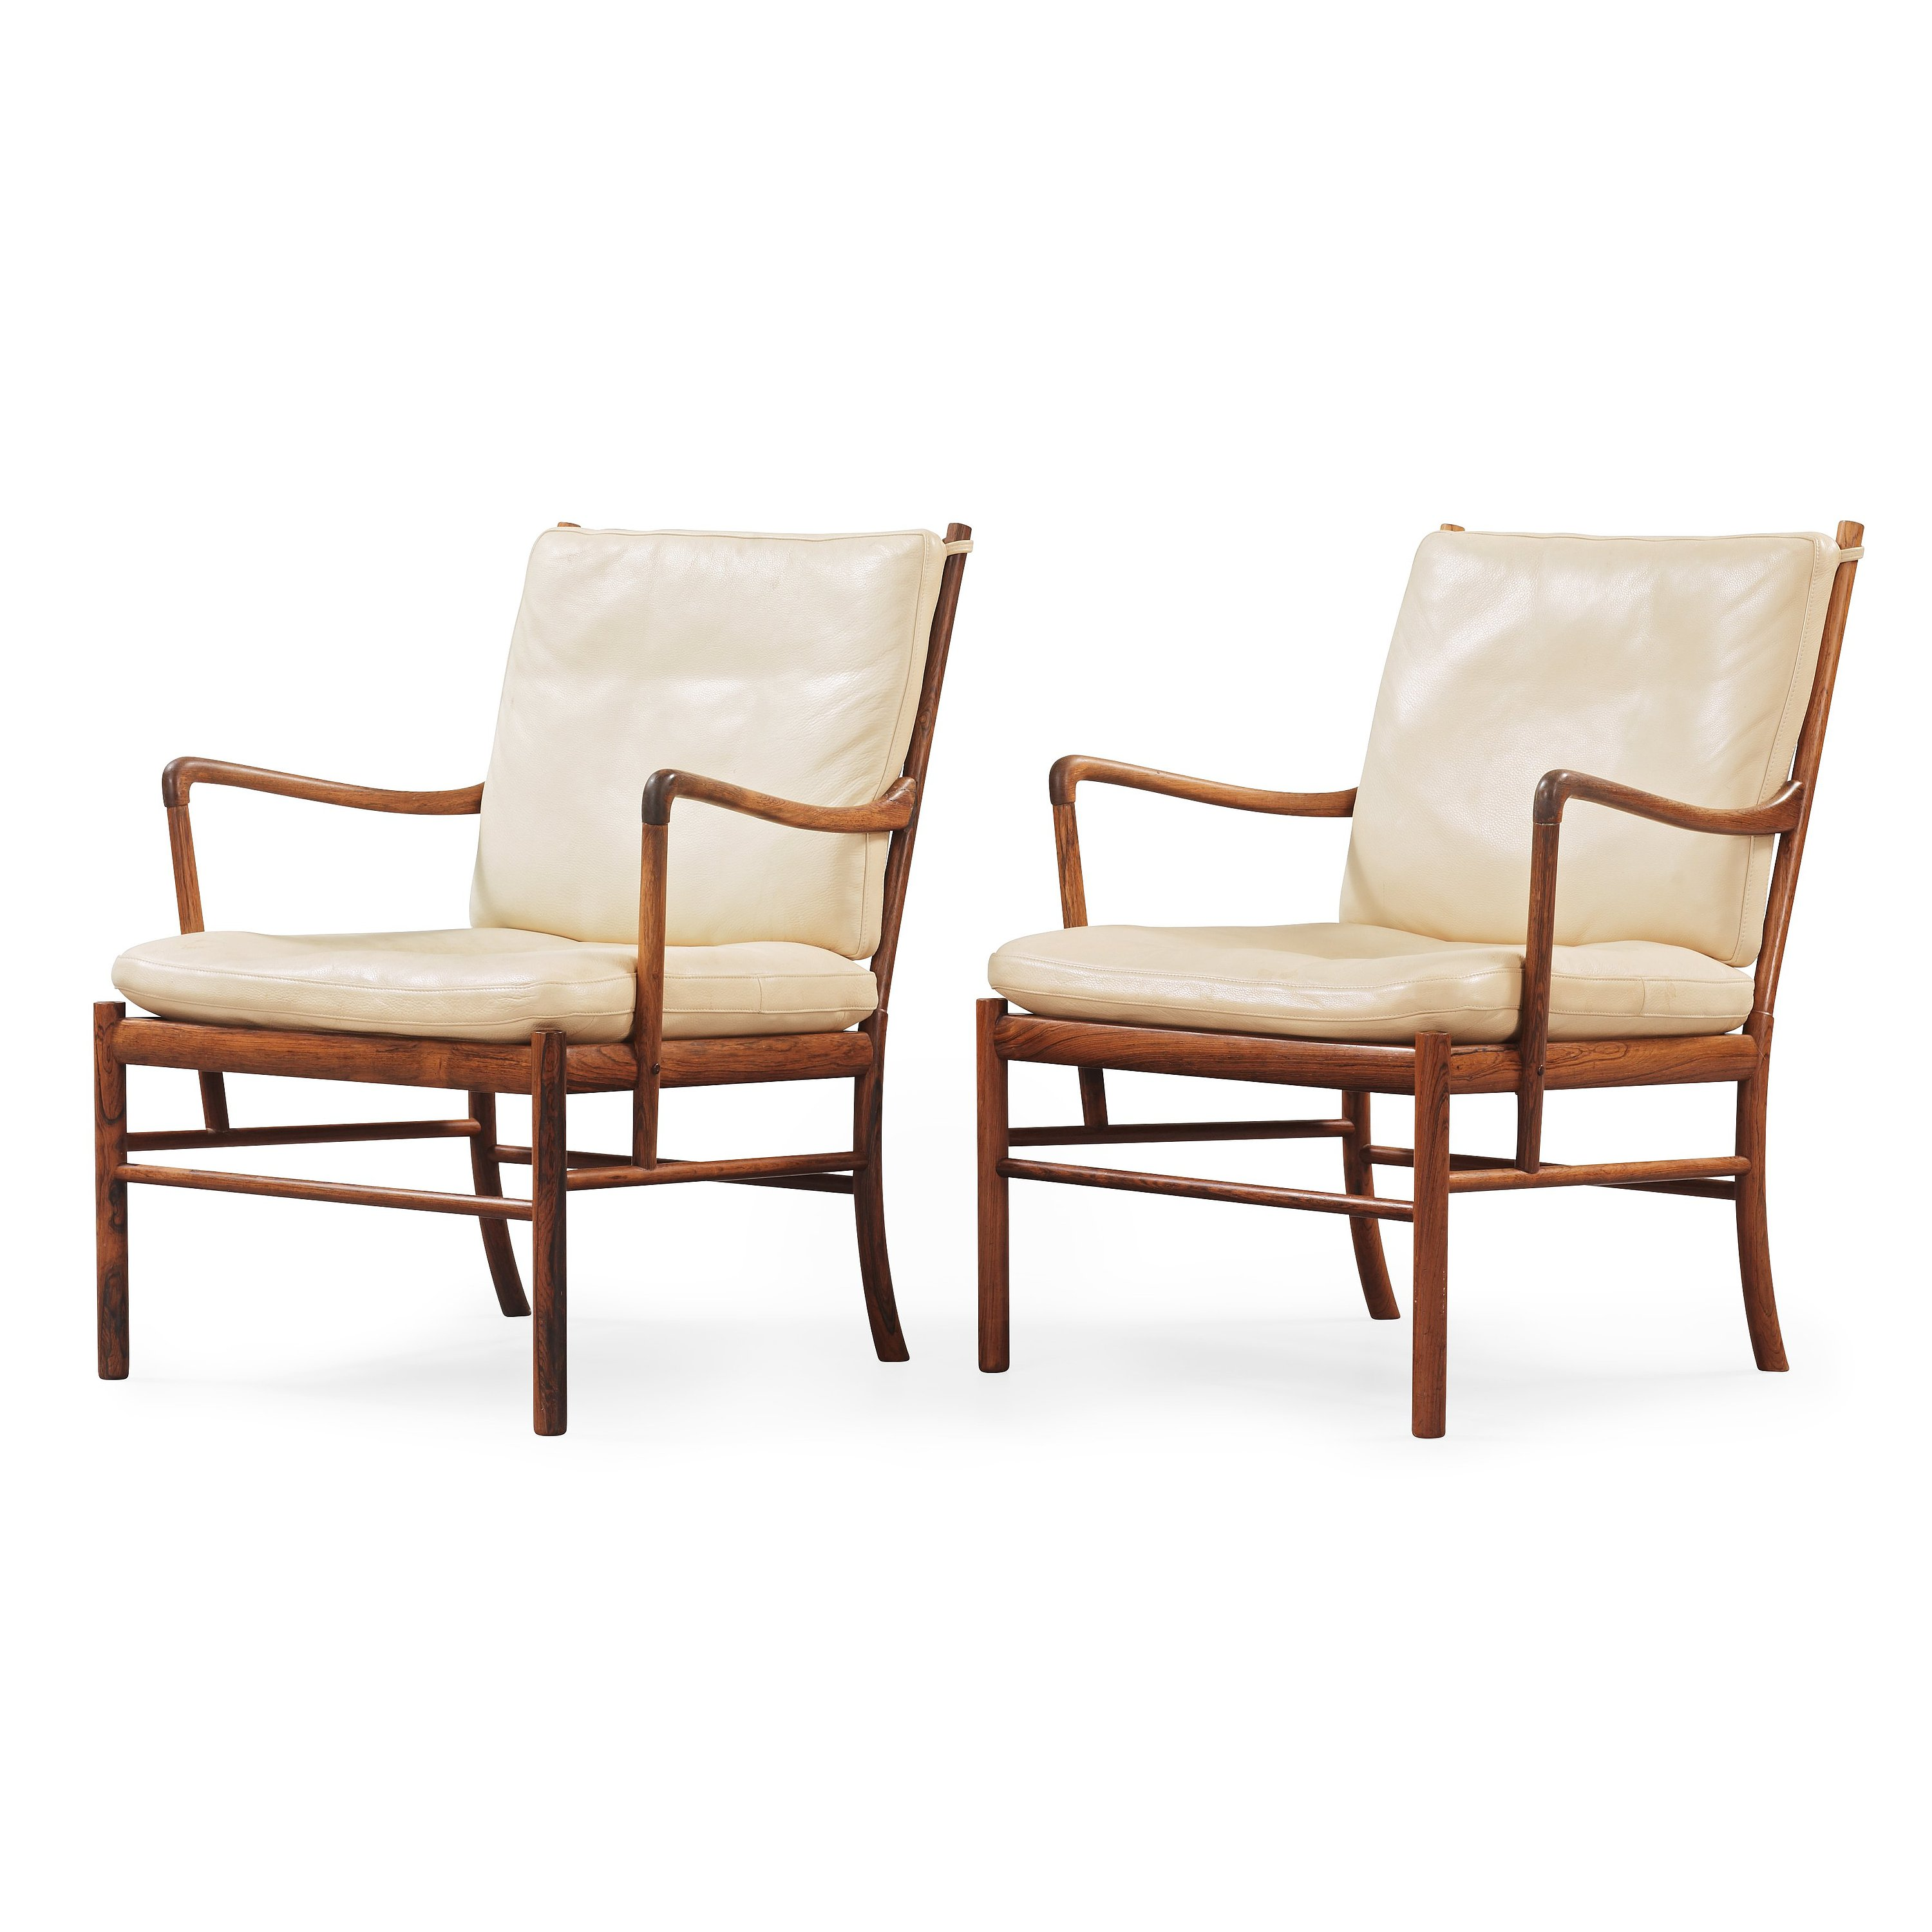 Colonial Chair A Pair Of Ole Wanscher Colonial Chair 39pj 149 39 Poul